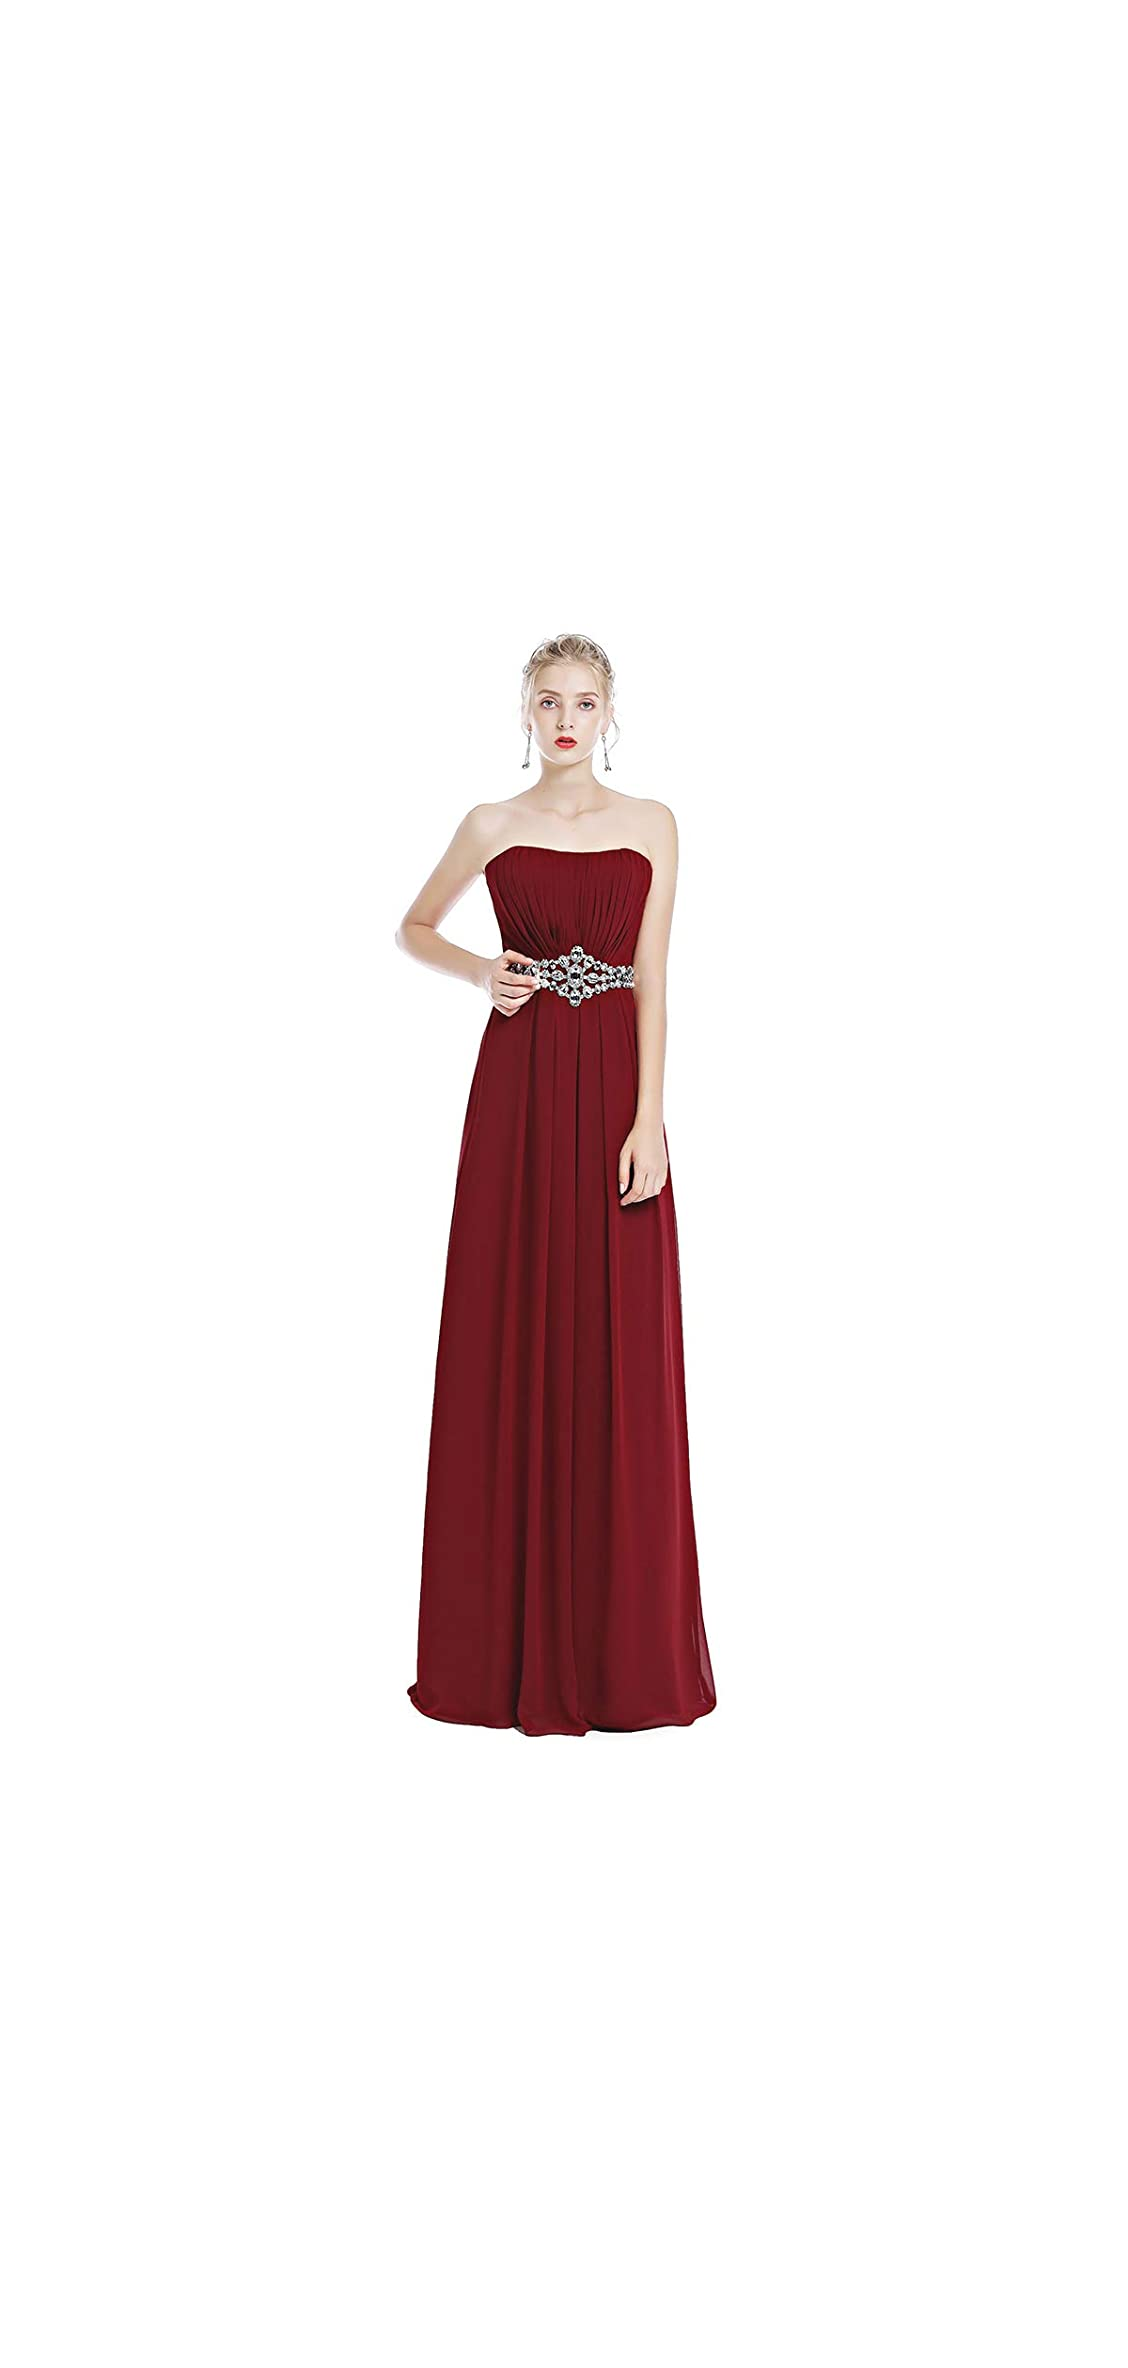 Women Strapless Ruched Long Bridesmaid Evening Maxi Dress